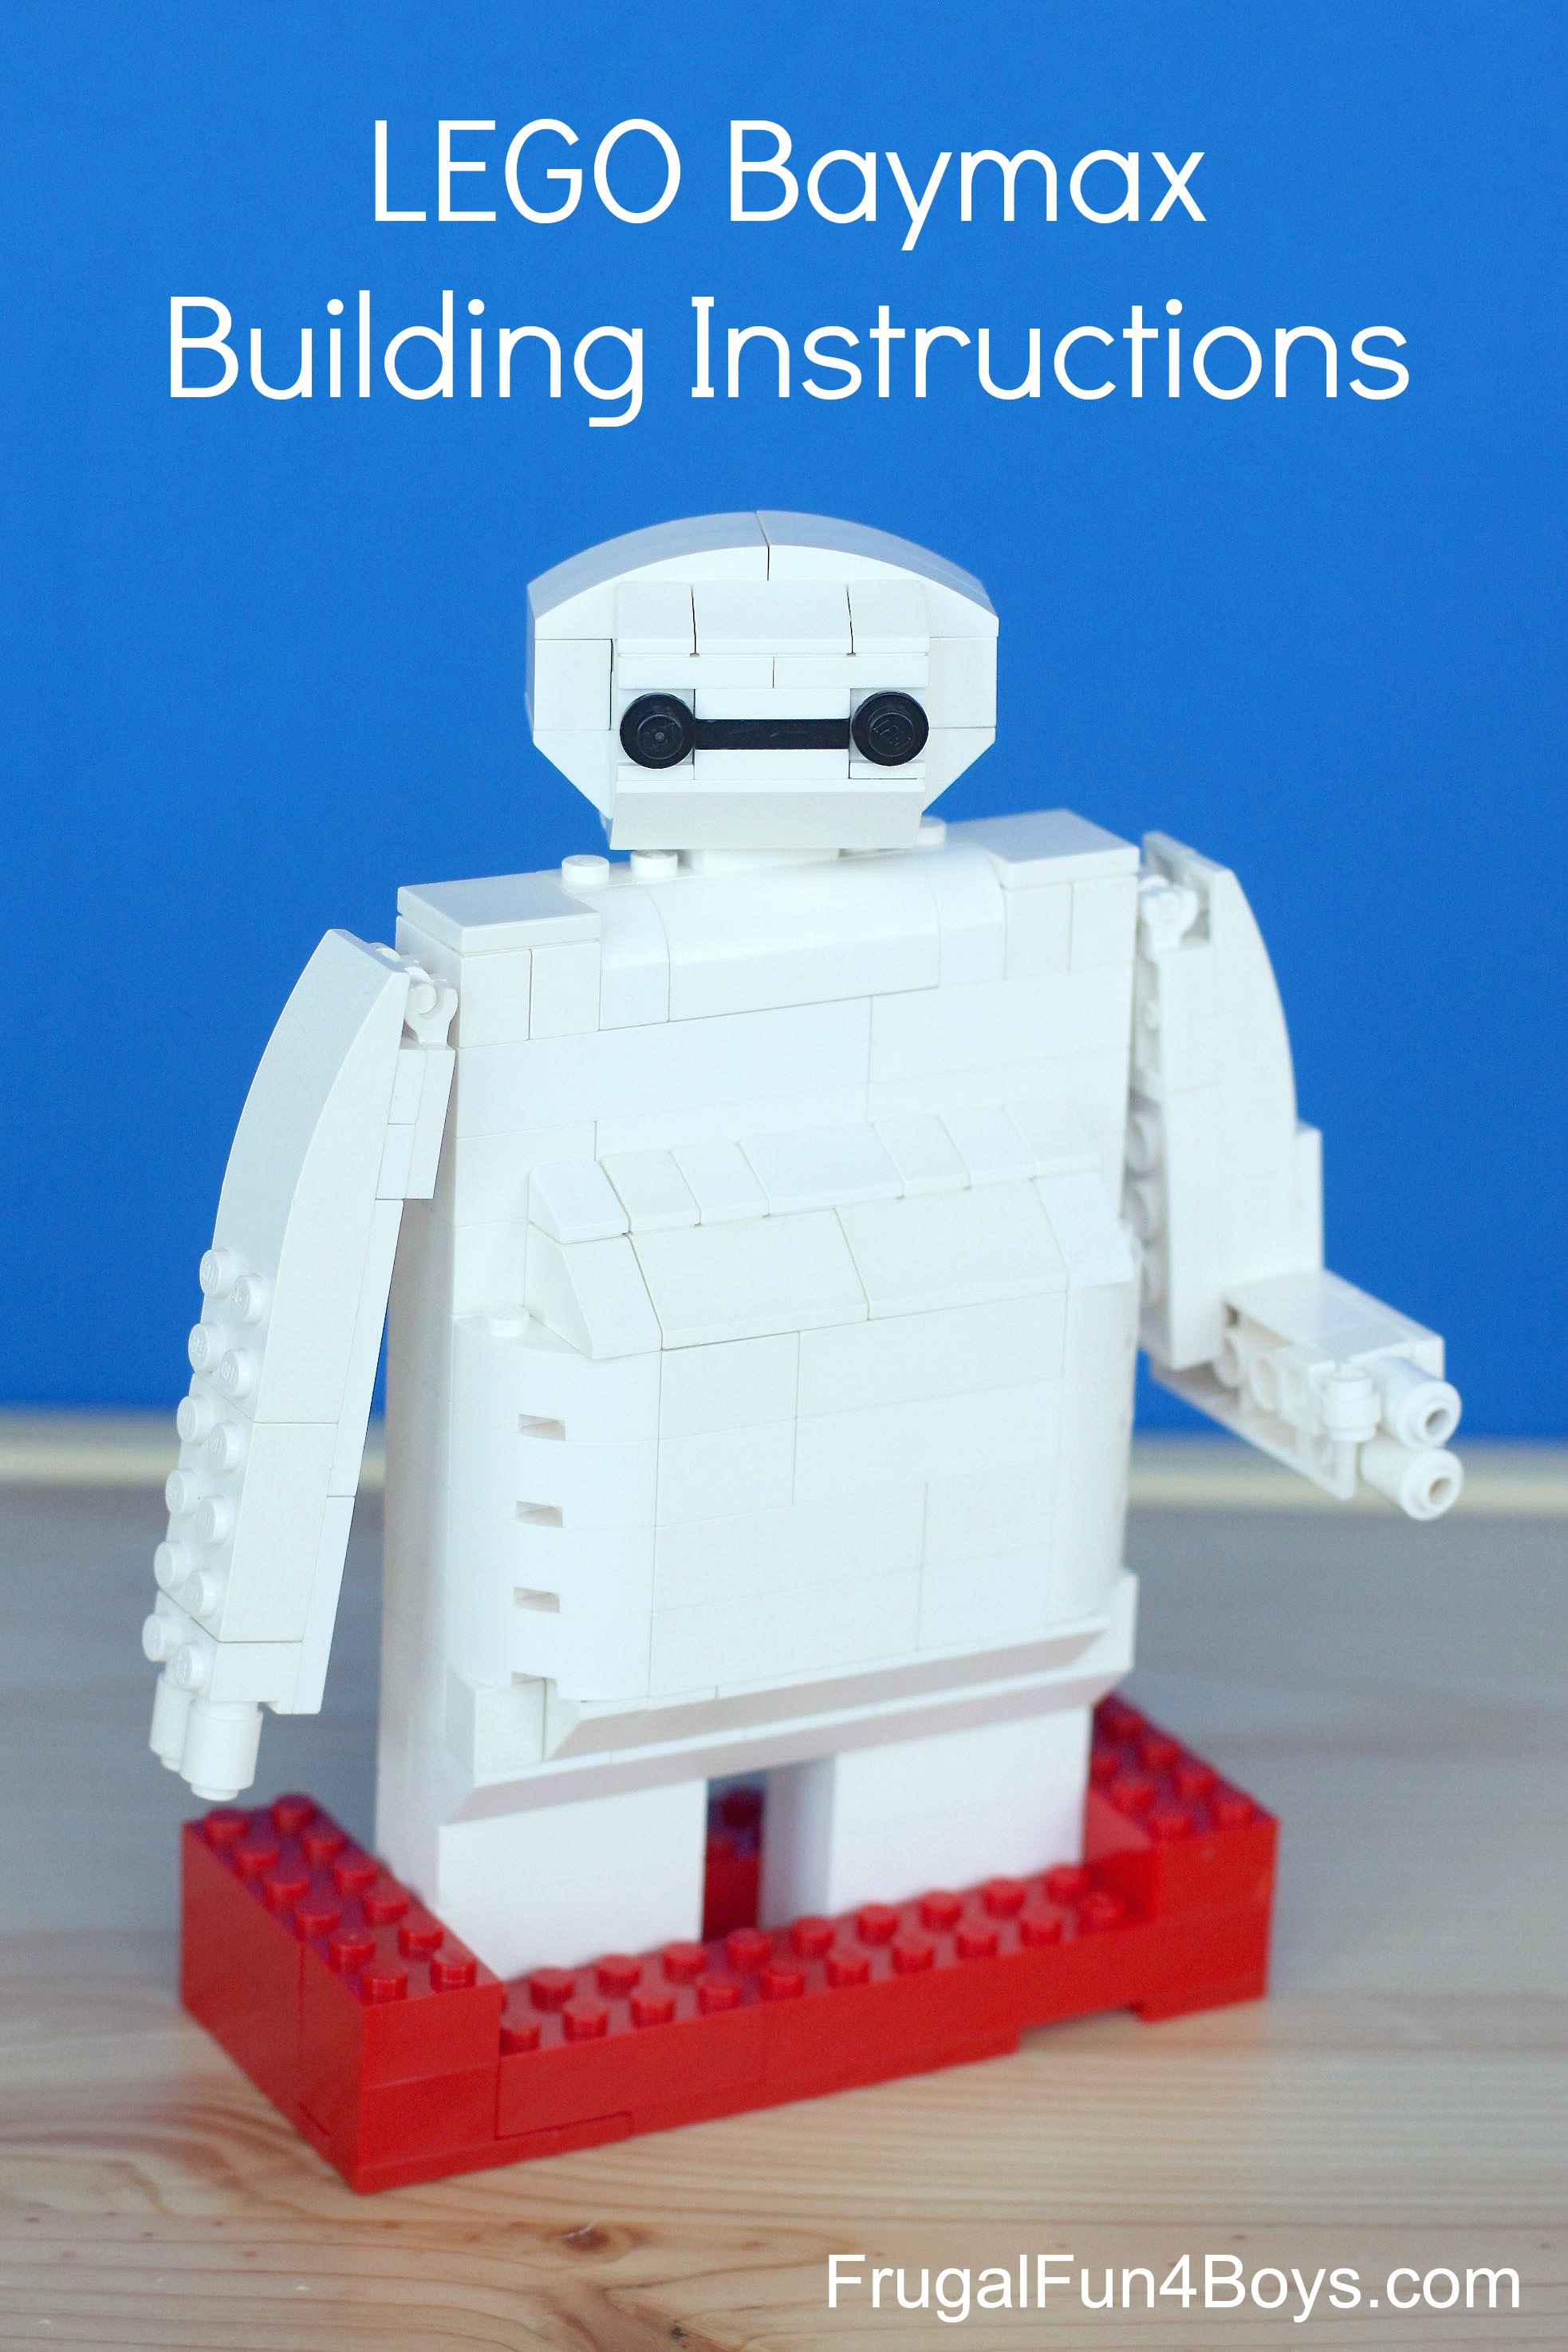 LEGO Baymax Building Instructions - Frugal Fun For Boys and Girls